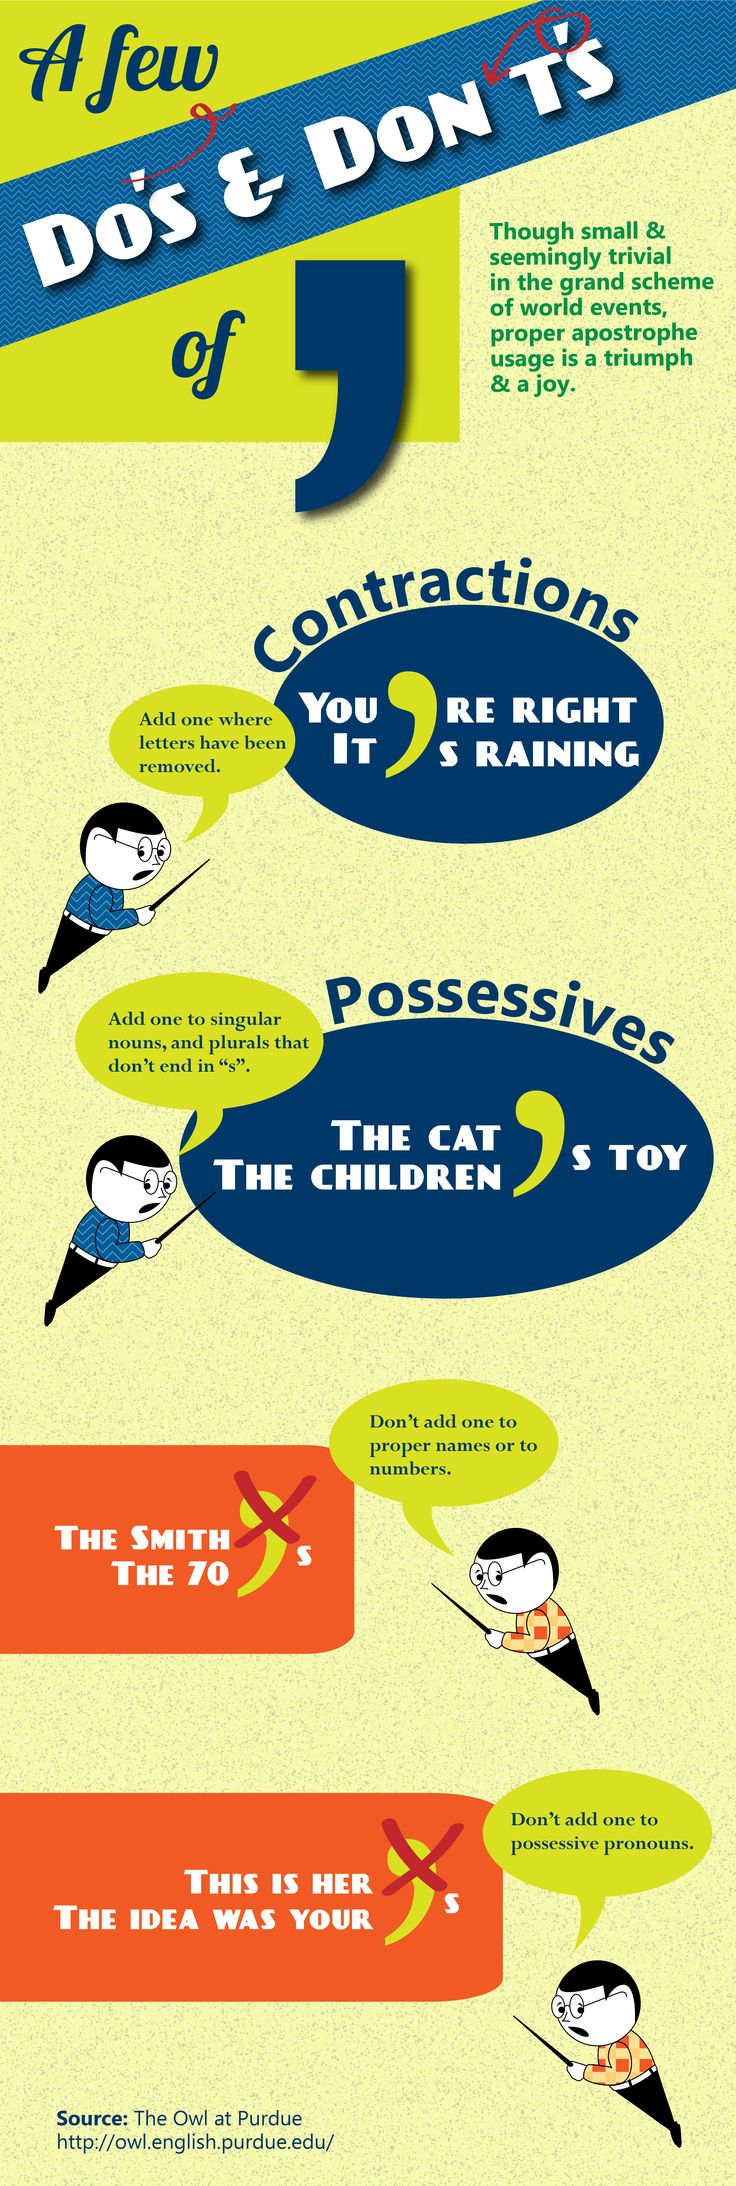 The Dos and Don'ts of the Apostrophe